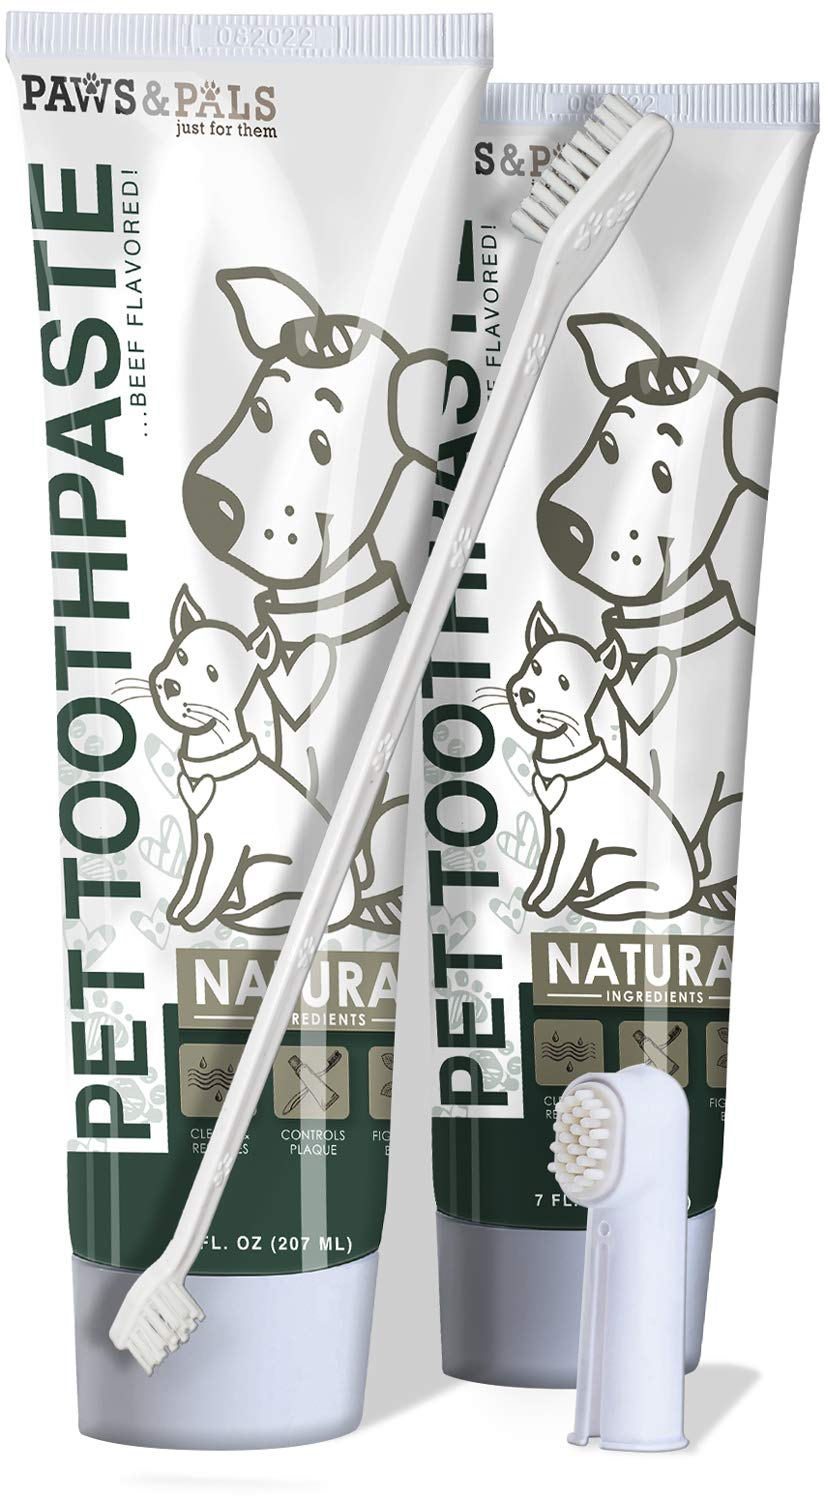 Dog Toothbrush and Toothpaste for Dogs Teeth Cleaning (Pack of 2) Cet Enzymatic Pet Tooth Paste & Dual Finger Brush for Cat Kitten Doggie Doggy Puppy Dental Care Kit - Beef Flavor 7oz Per Tube by Paws & Pals